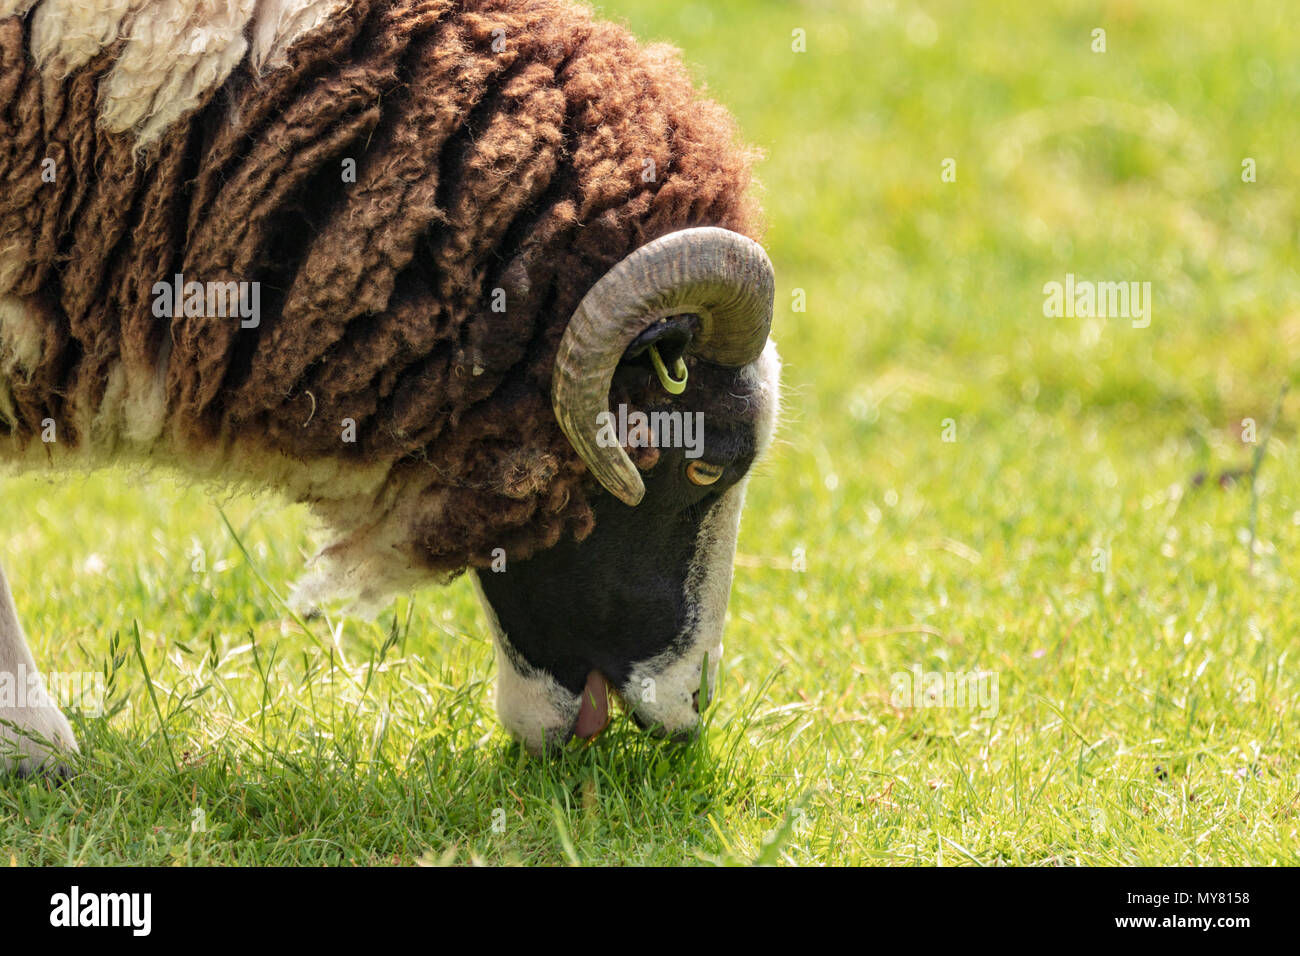 Jacob sheep portrait showing horns Stock Photo